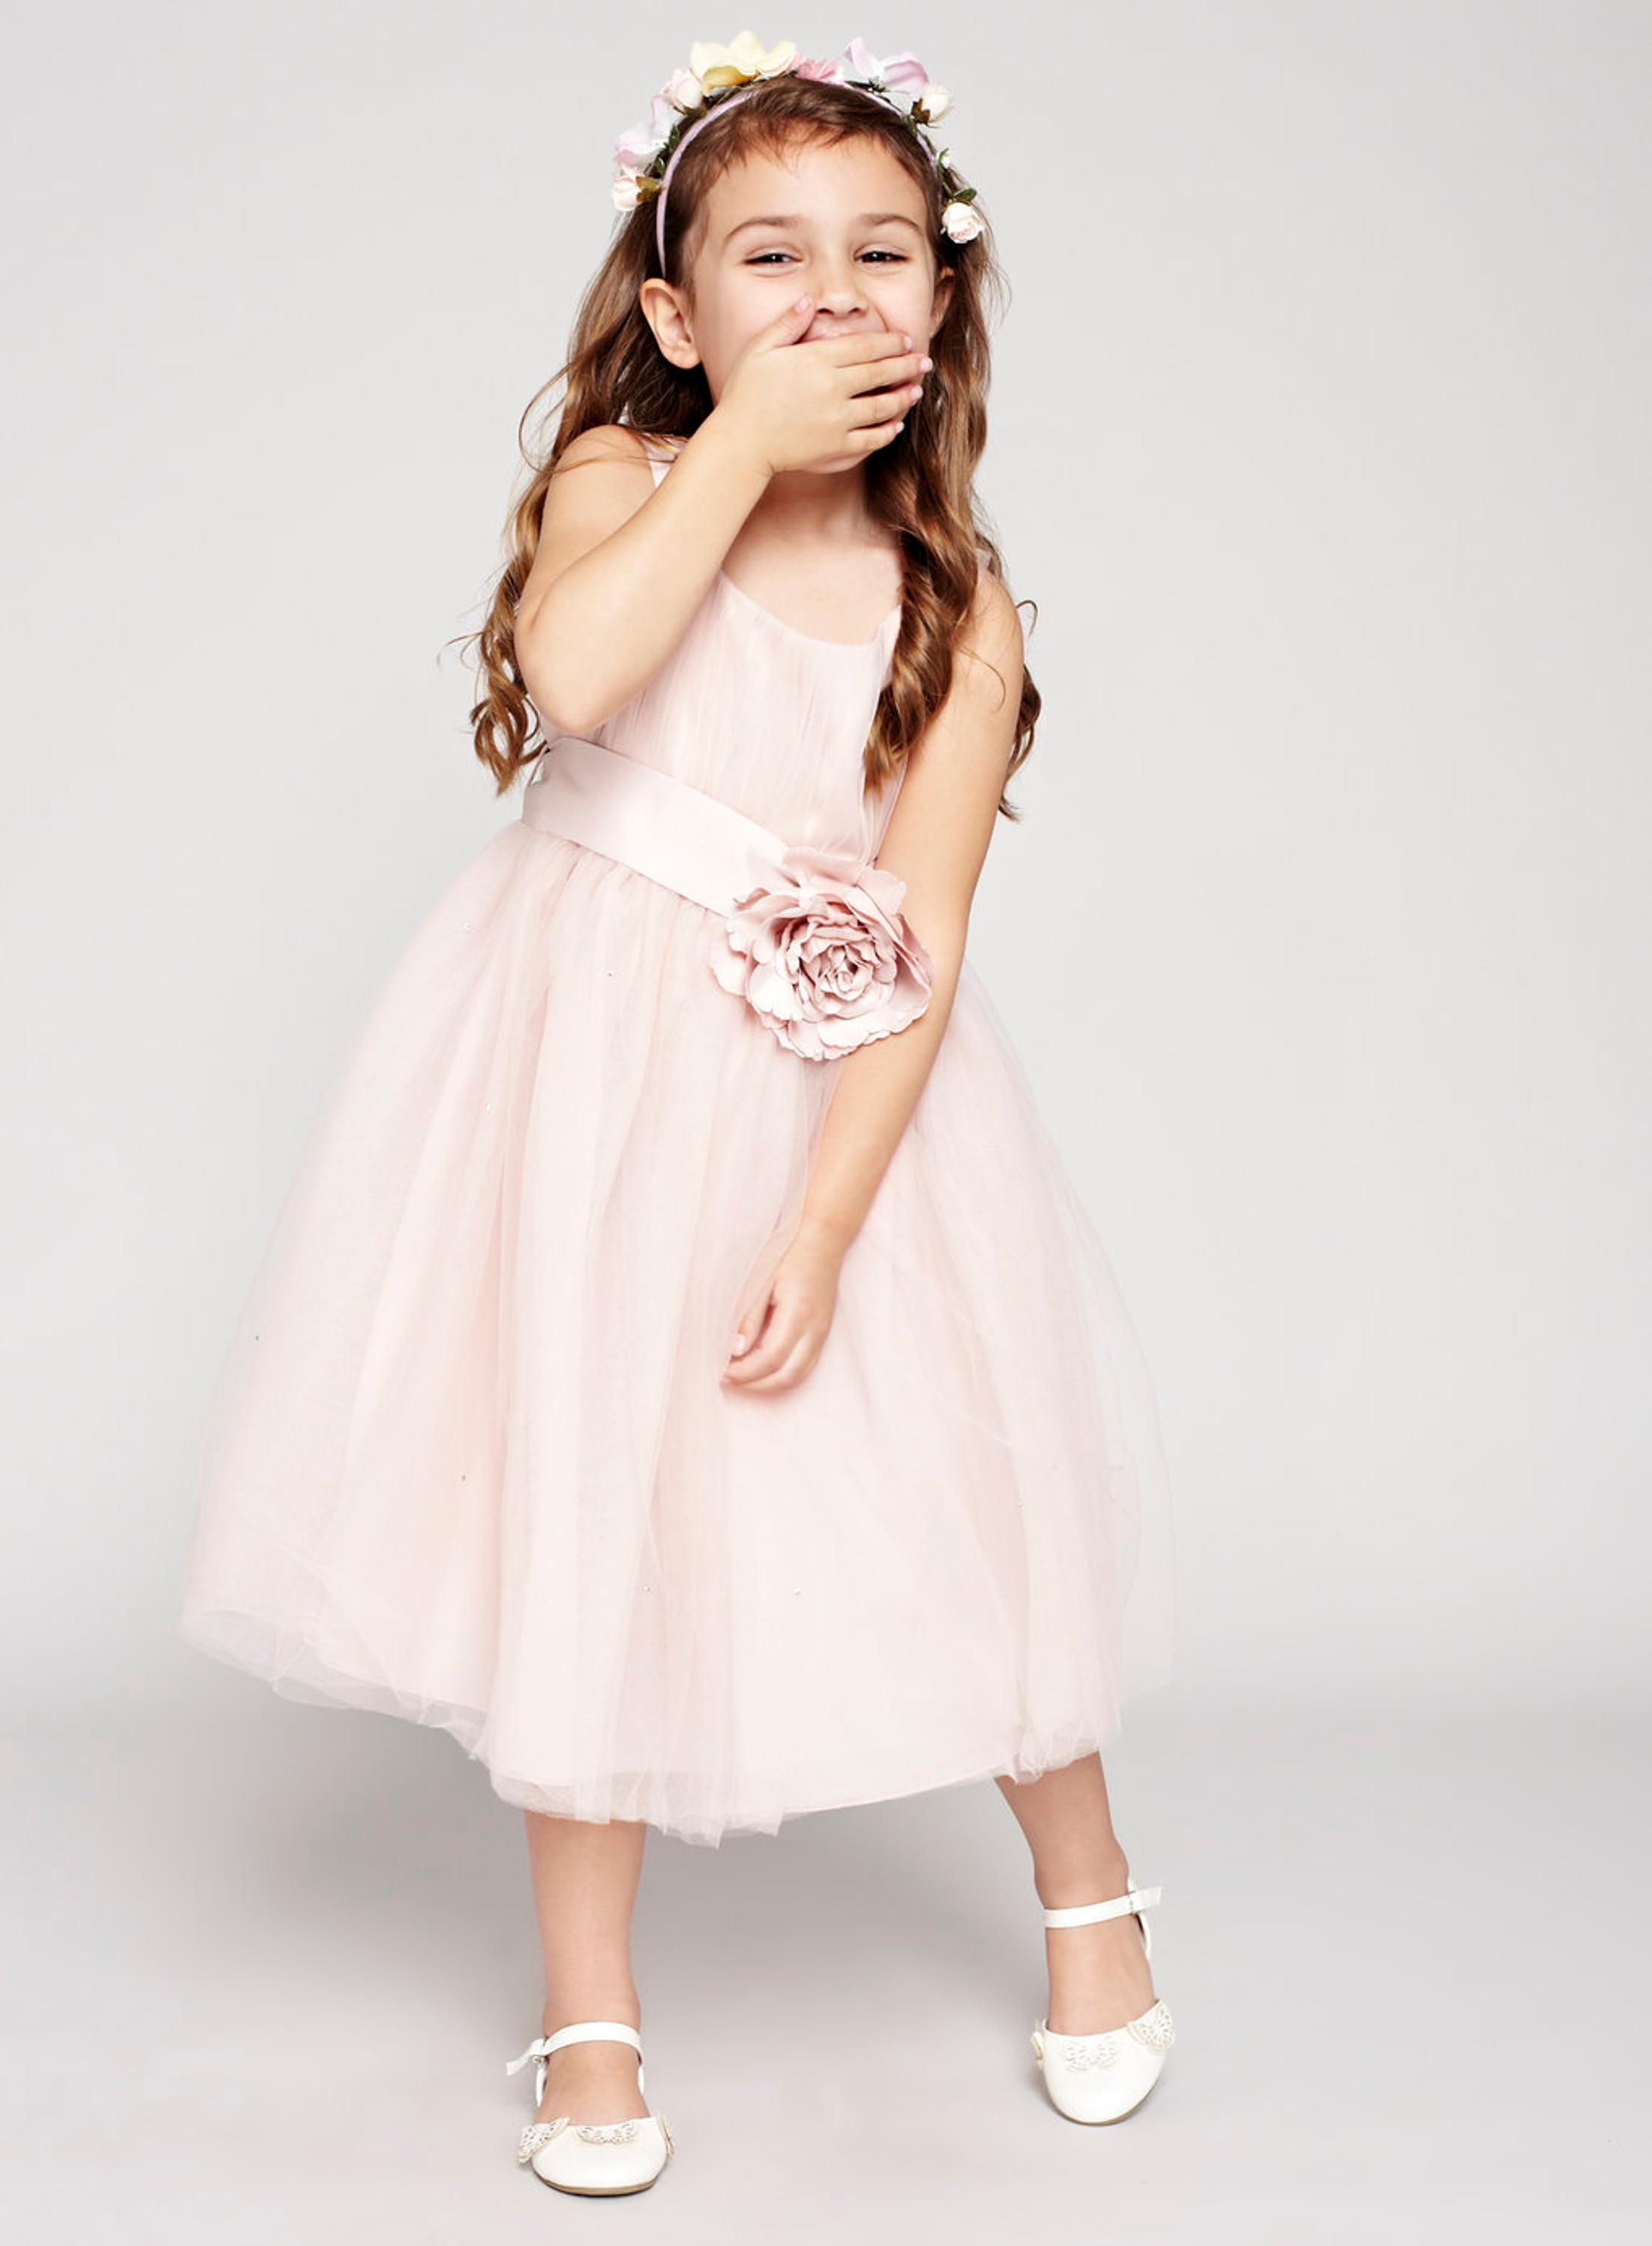 Flower Girls Dresses For Wedding Gowns Knee-Length Kids Prom Dresses Tulle Mother Daughter Dresses With Flower For Girls Party short flower girls dresses for wedding gowns knee length kids prom dresses lace dress girl tulle mother daughter dresses